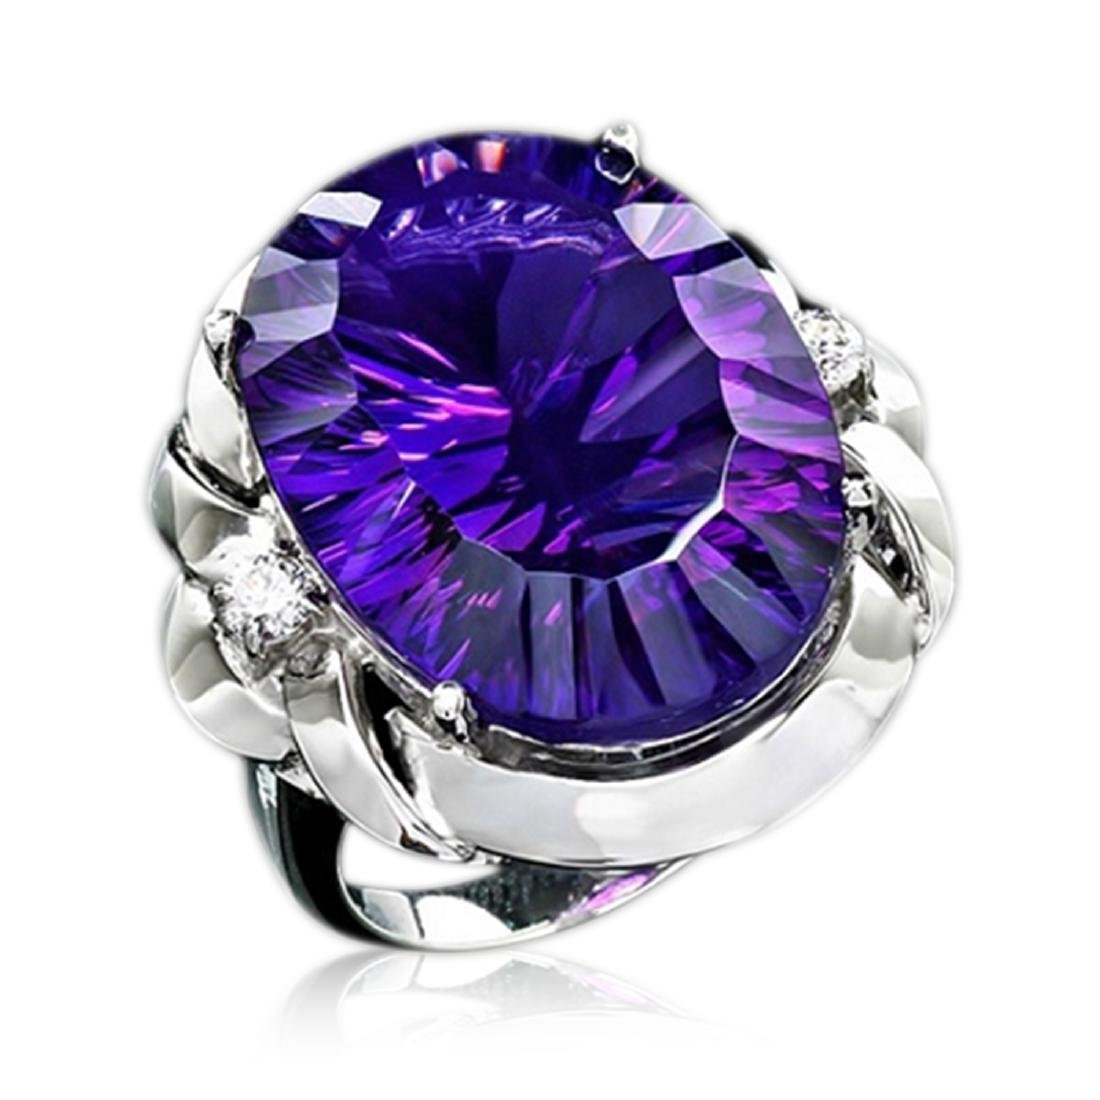 29.25 Carat Natural Amethyst 18K Solid White Gold